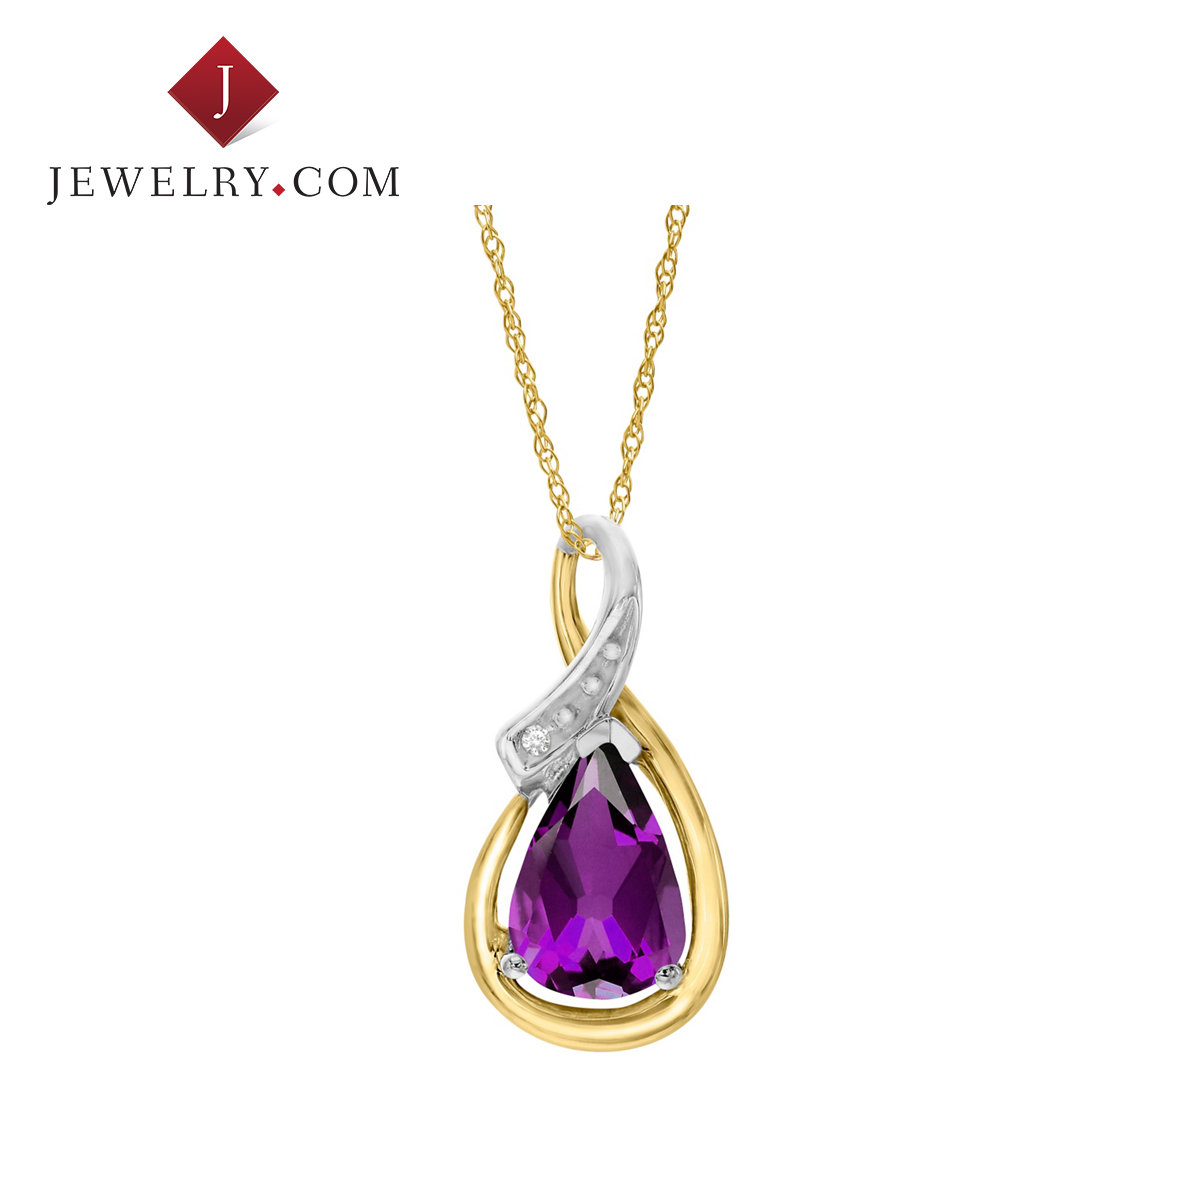 Jewelry.com official 1.2 karat k gold inlay diamond sterling silver amethyst pendant charm female models jewelry